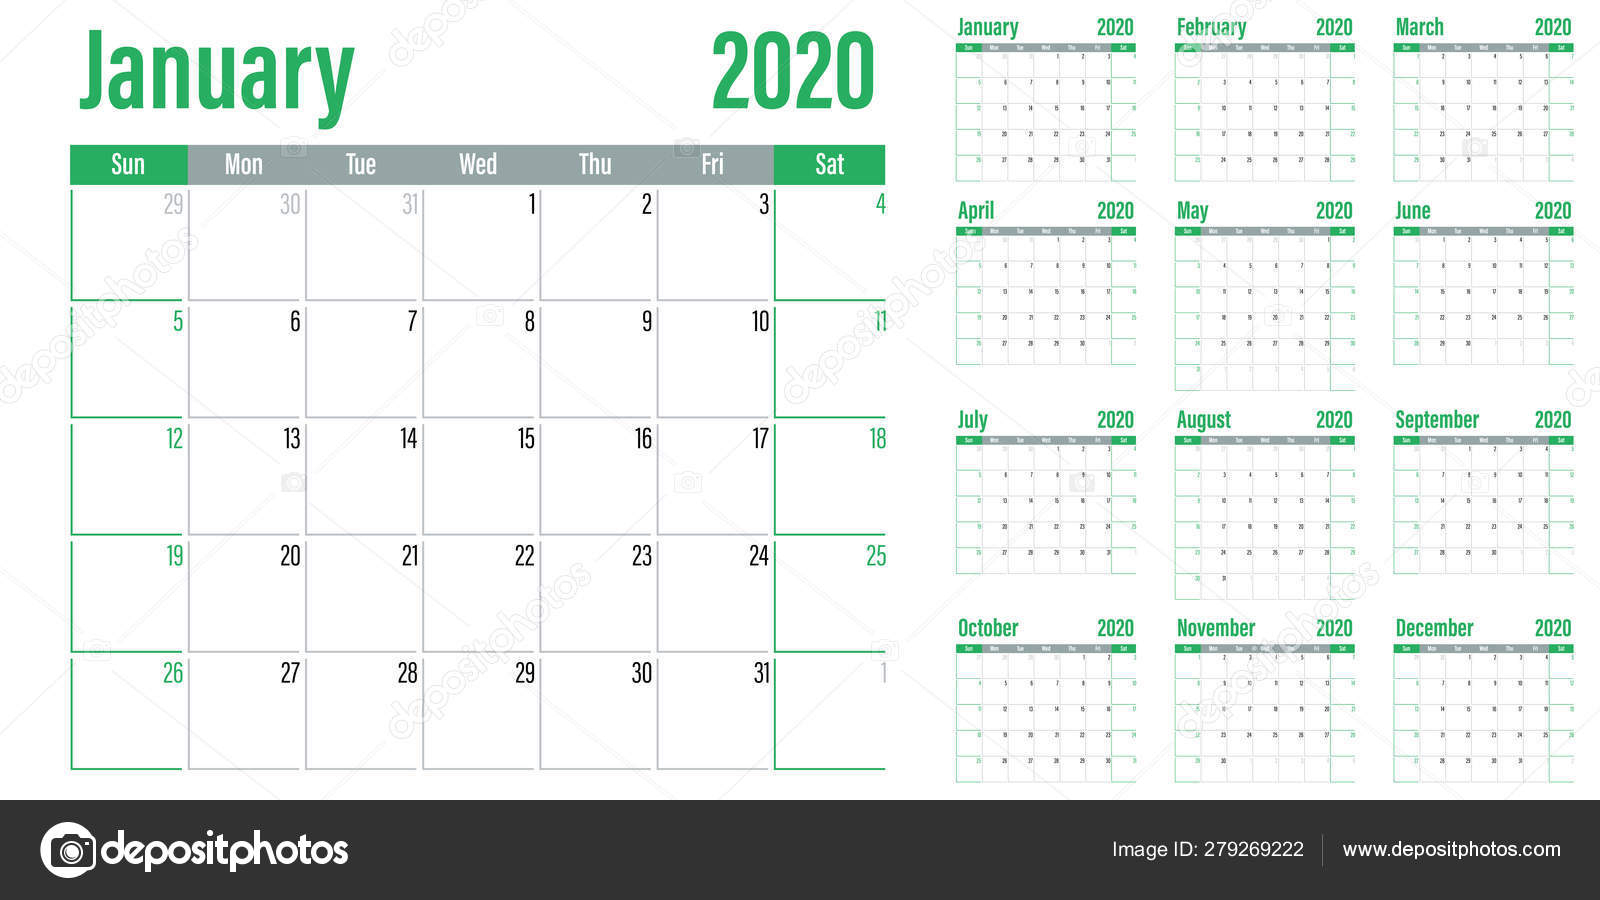 Calendar Planner 2020 Template Vector Illustration All Months Week pertaining to 2020 Calendar Sunday To Saturday